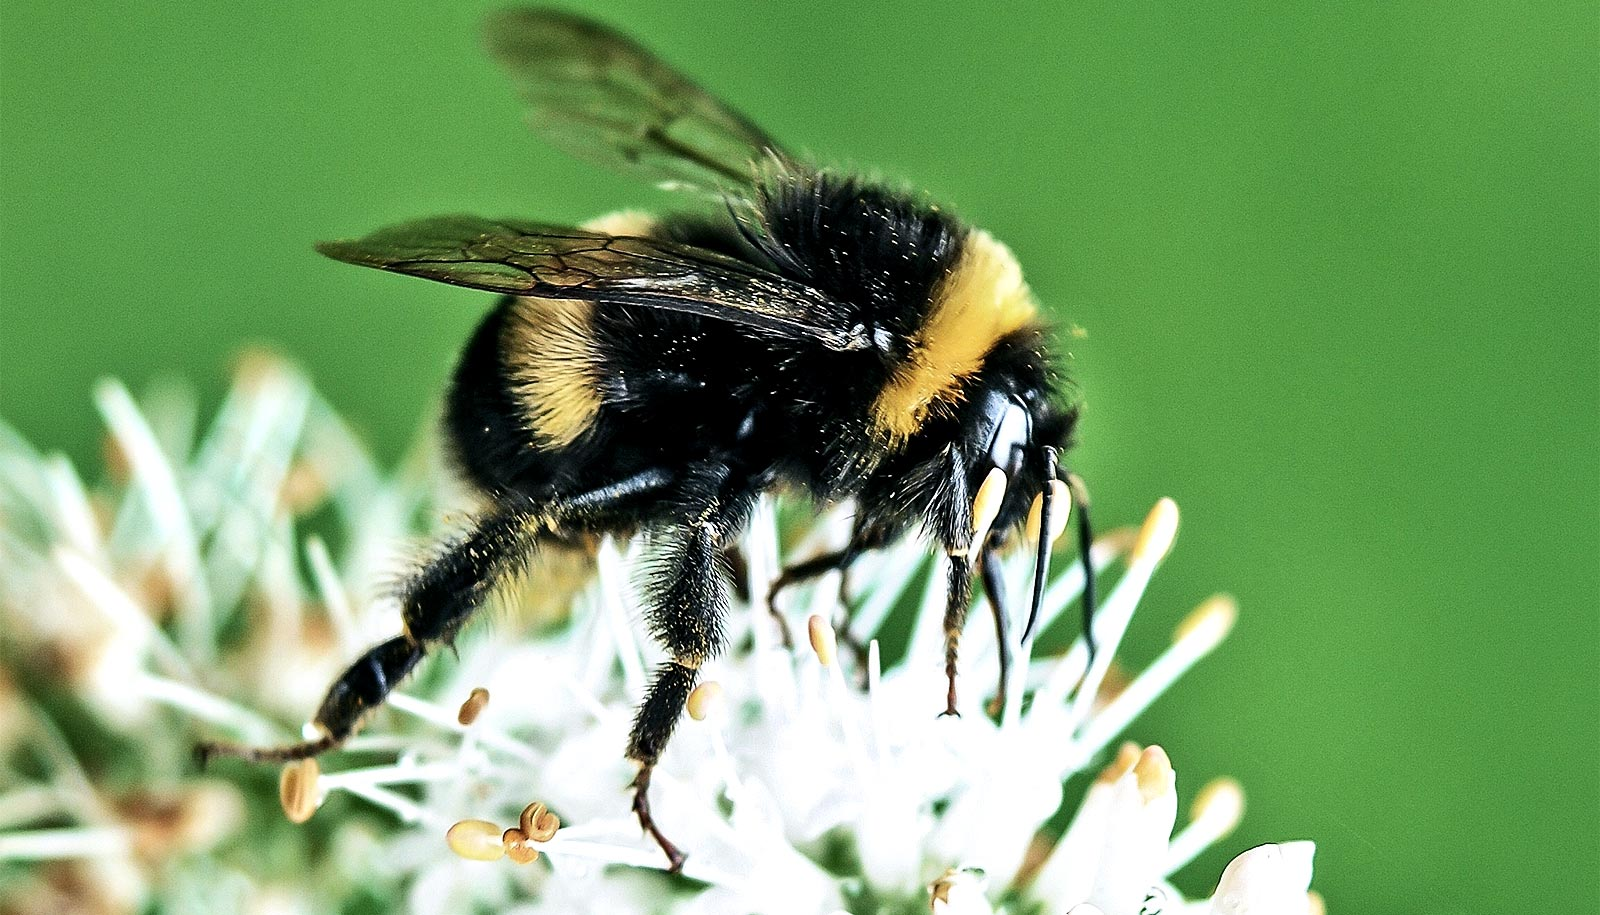 Bumble bees see huge population decline - Futurity